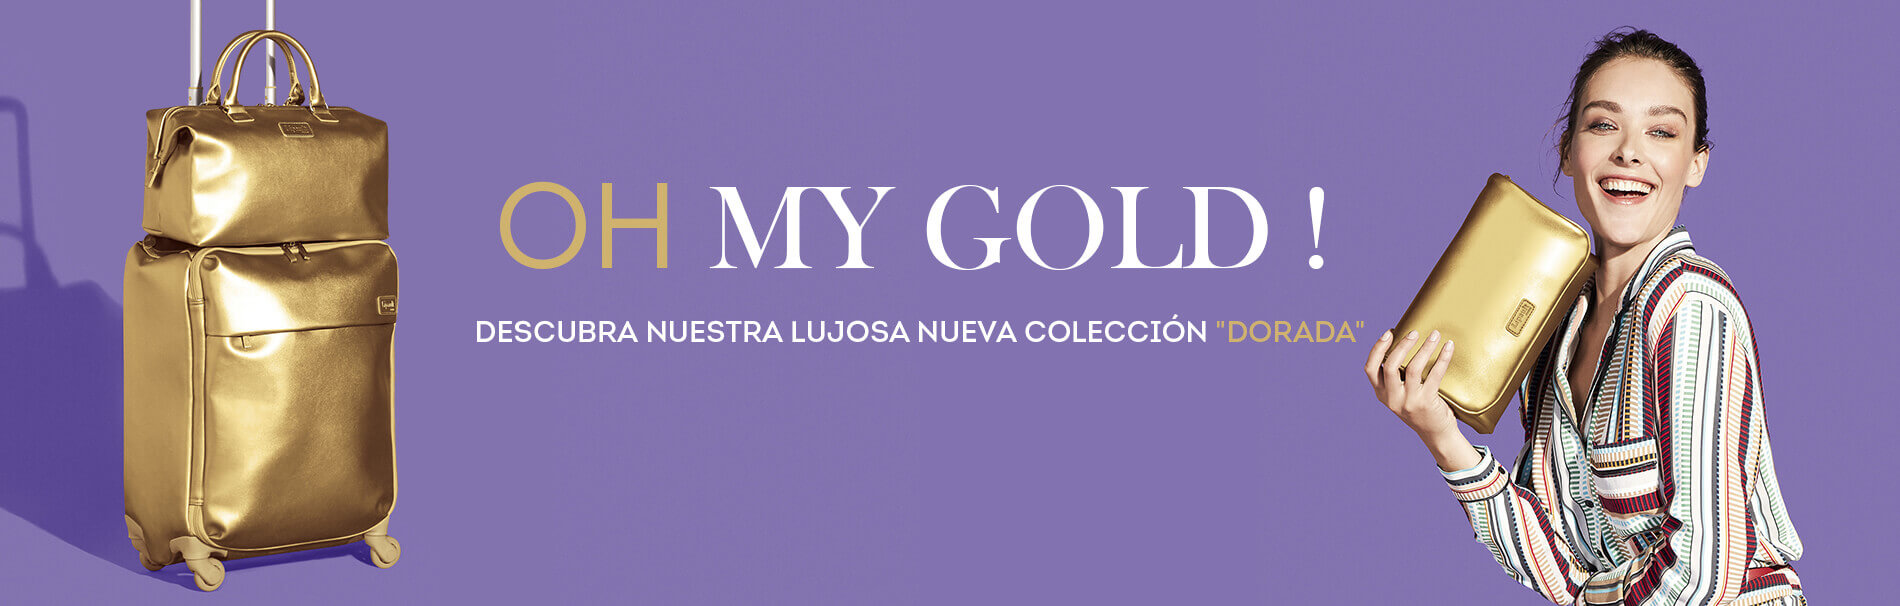 Oh my gold collection